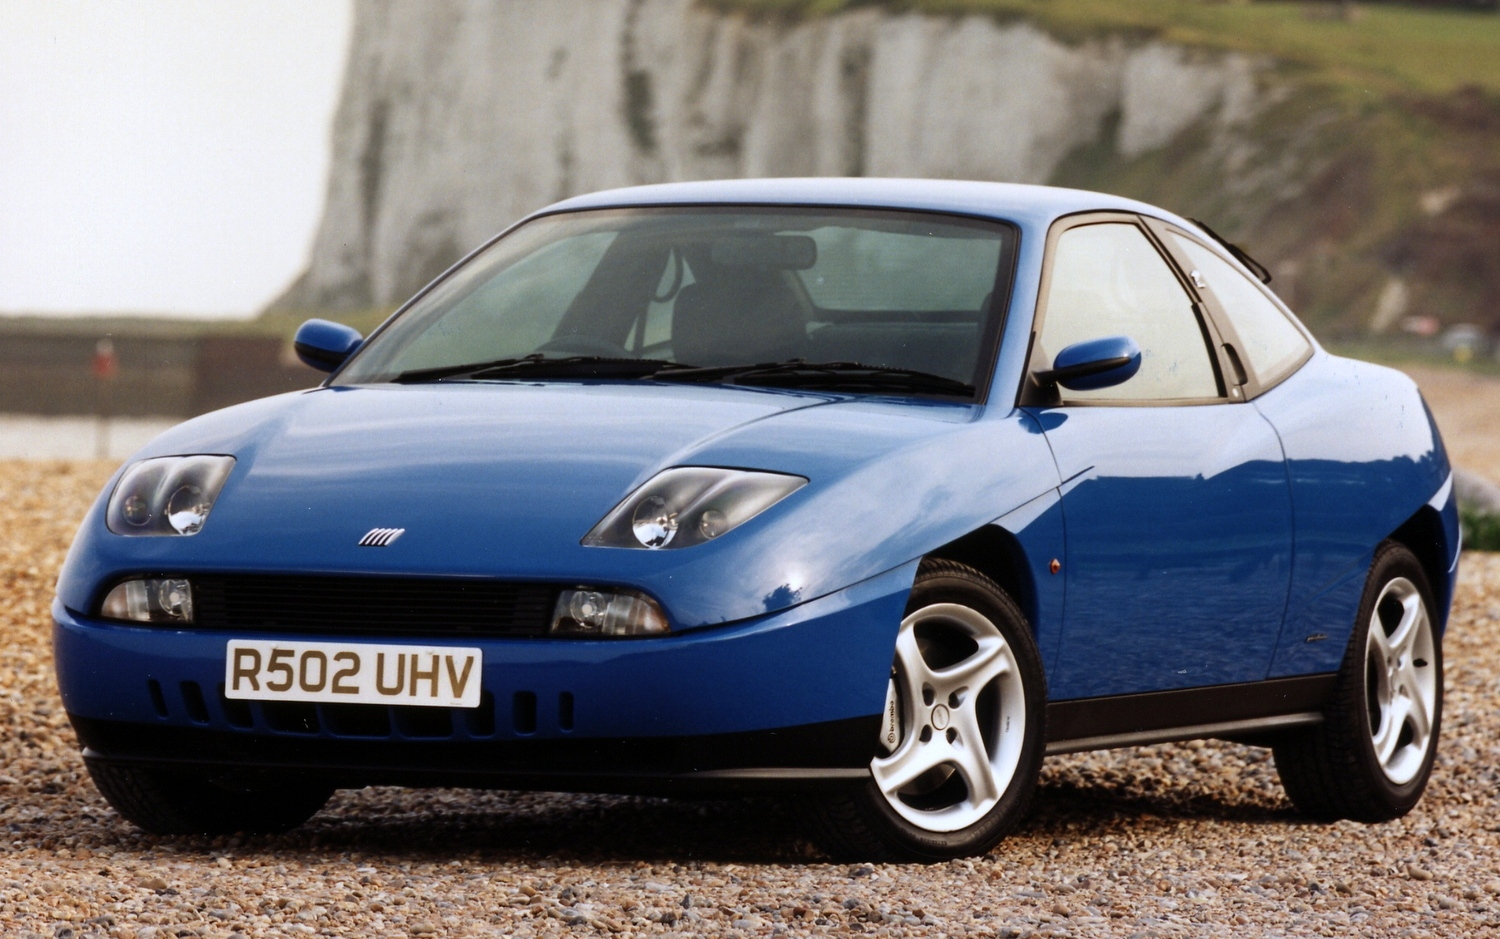 If Youu0027re Going To Buy A Fiat Coupe, Youu0027re Going To Have To Expect To  Spend Money. Rust, Electrical Faults And Expensive Servicing Are Some Of  The Coupeu0027s ...